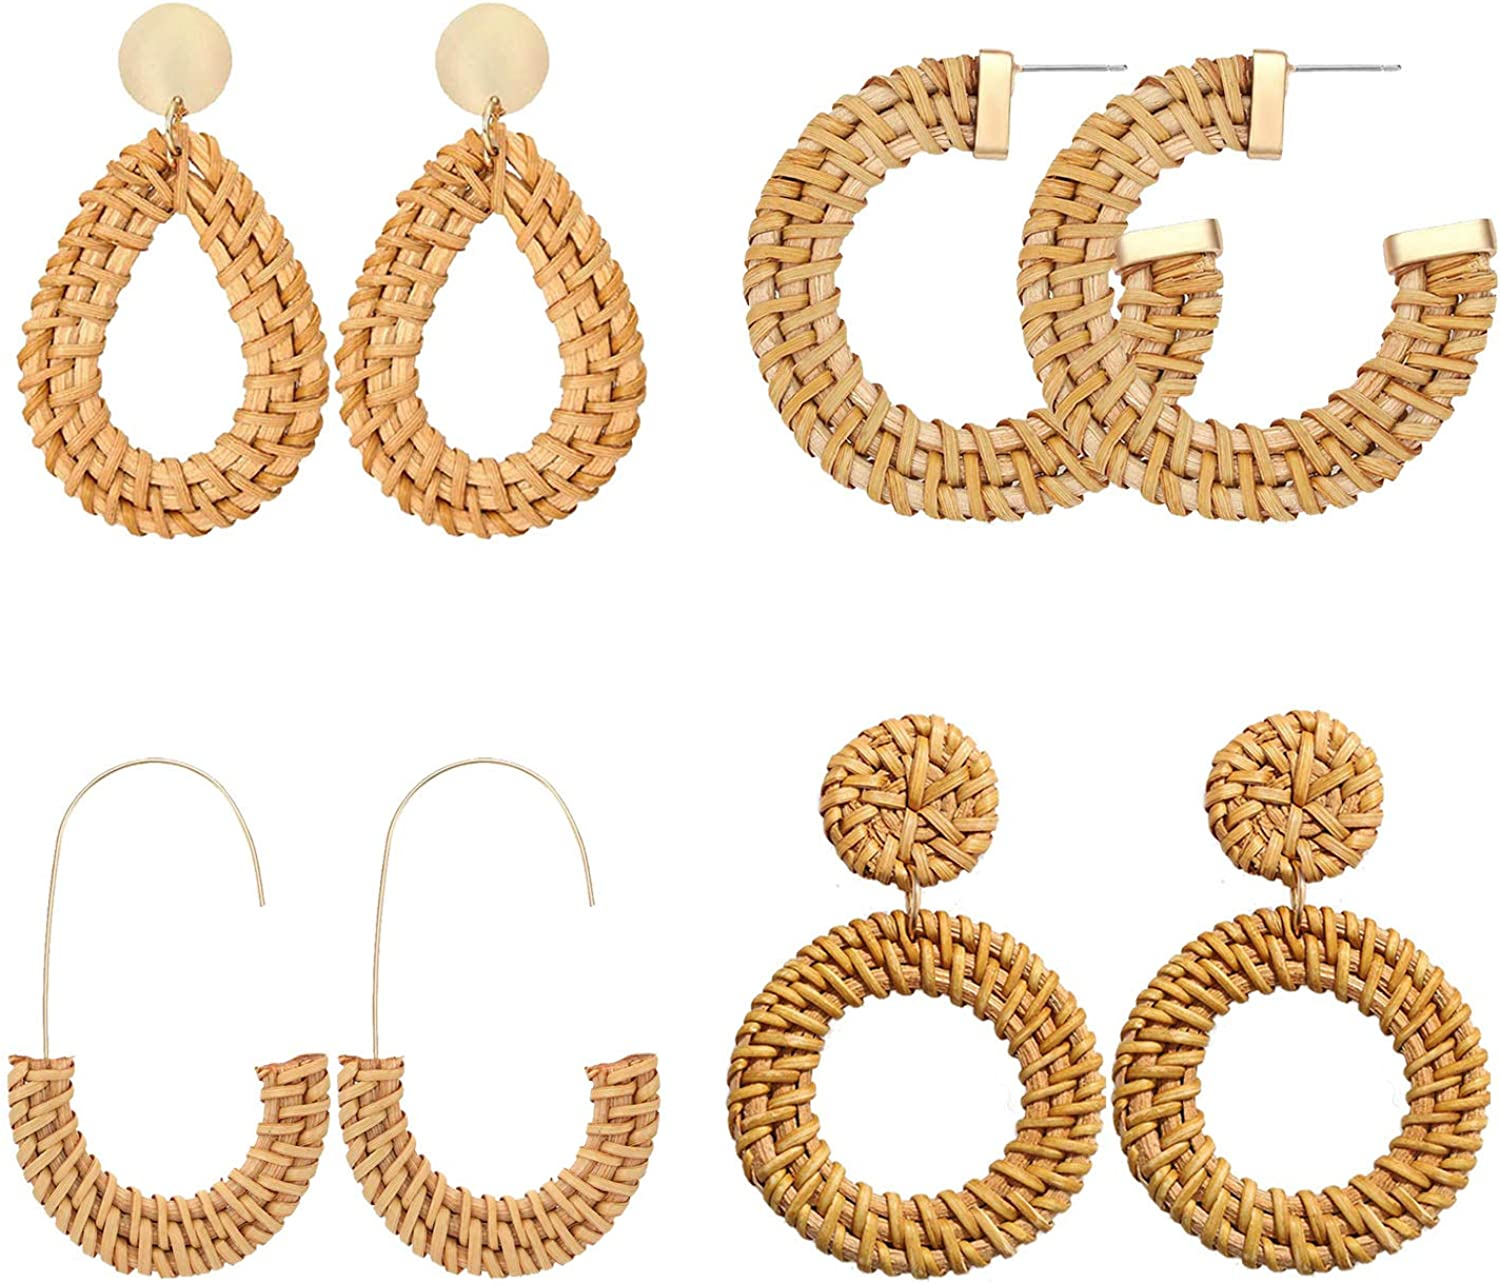 CEALXHENY Rattan Earrings Wicker Weave Hoop Earrings Handmade Straw Rattan Drop Dangle Earrings for Women Girls